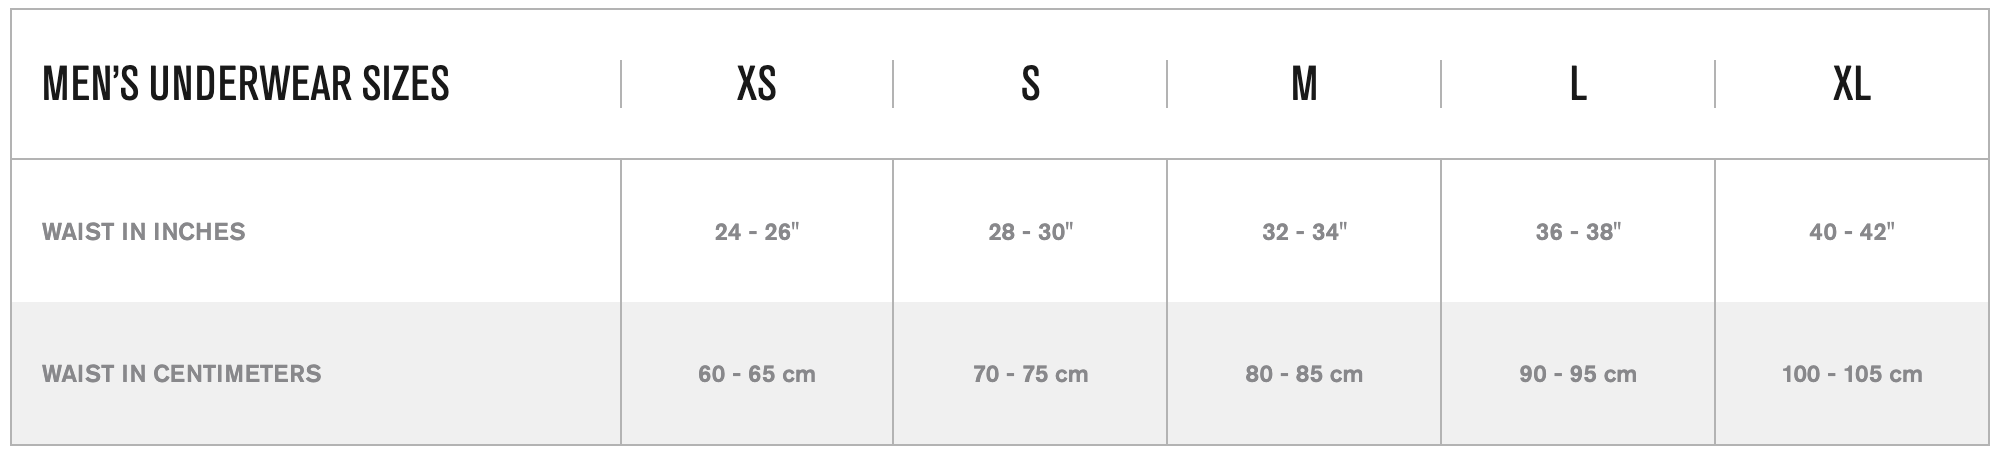 Stance Size Guide